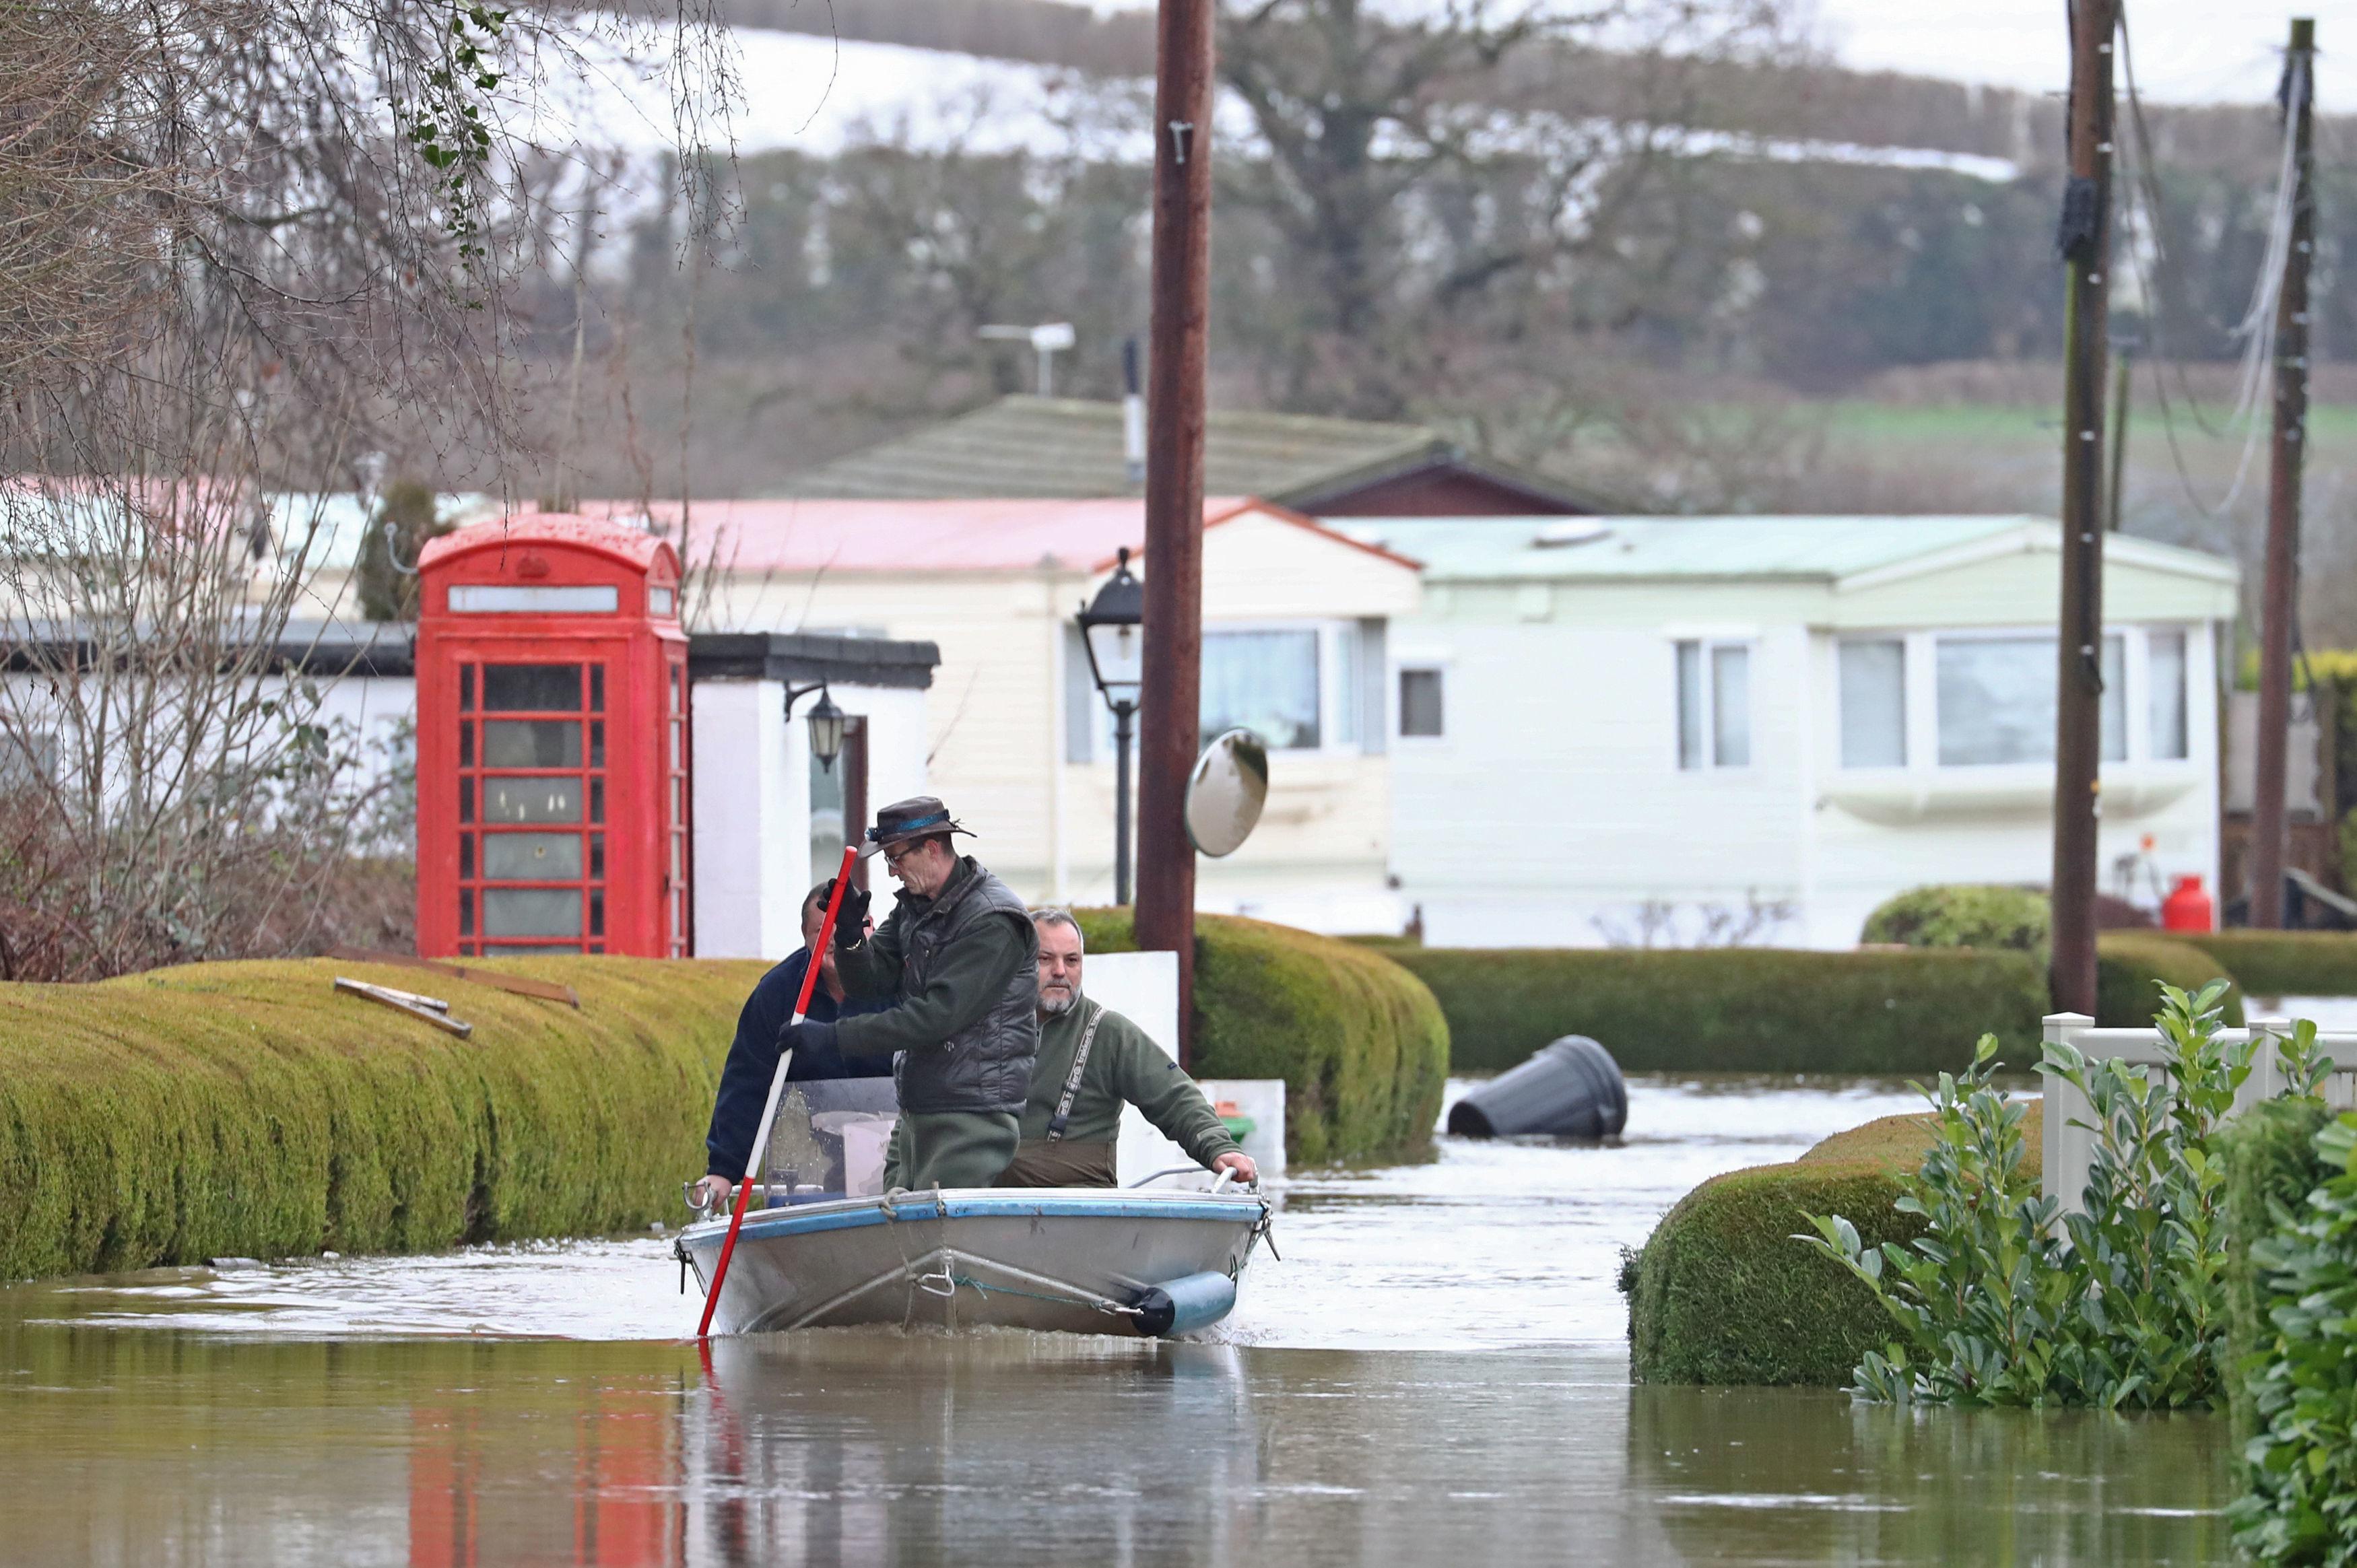 Christmas weather forecast 2019: Travellers face misery as flooding causes major disruption